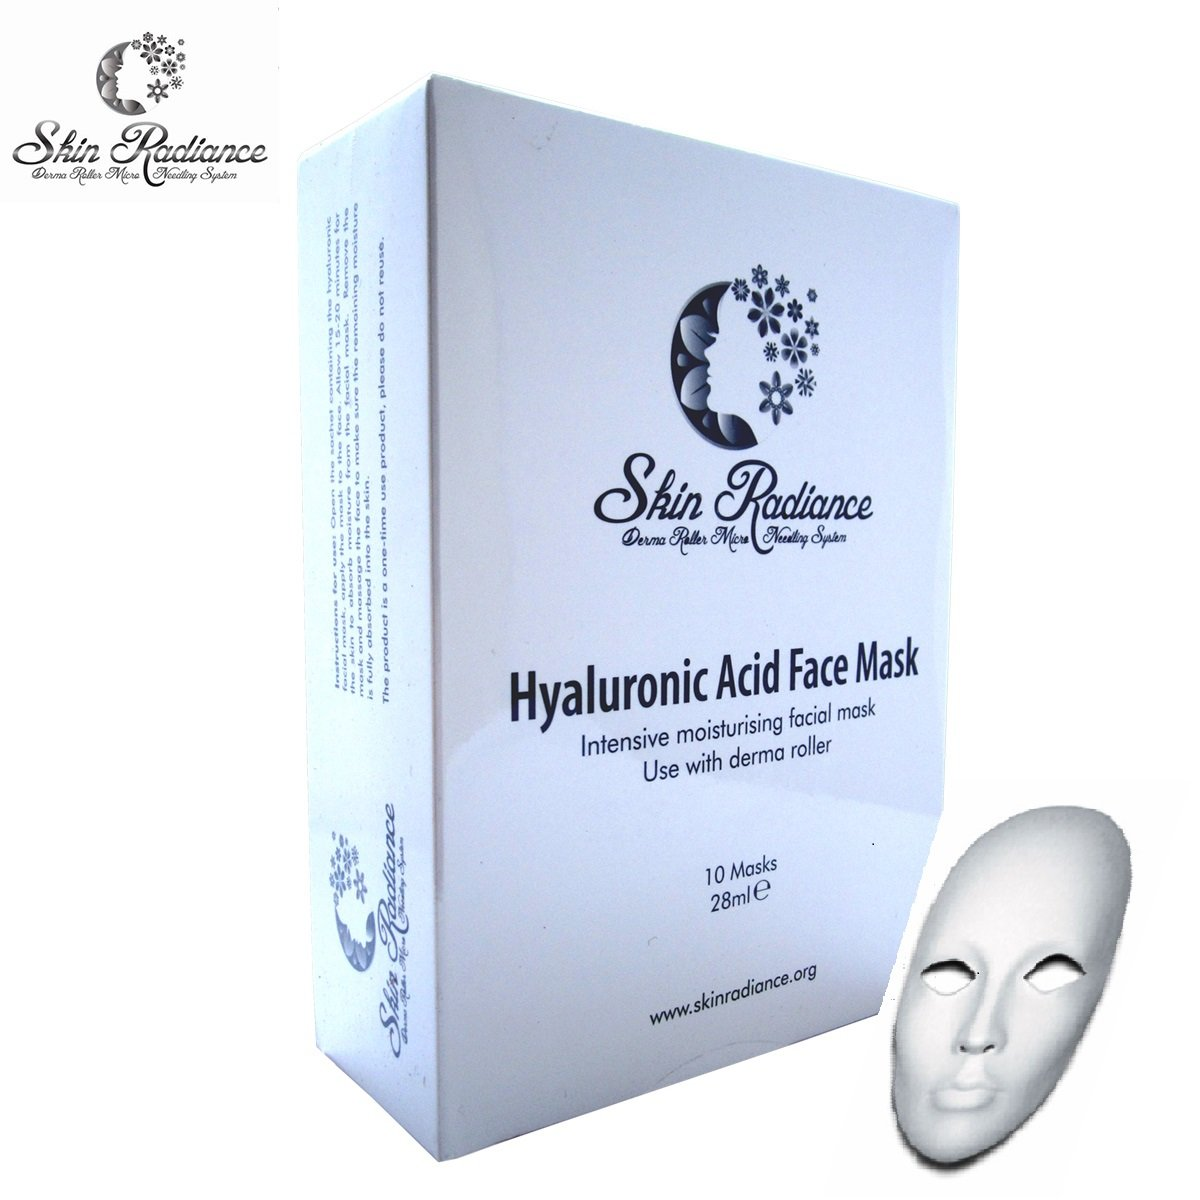 Superlift Anti Aging Collagen Face Masks Pack x 10 - Luxurious Facial Treatments for Pamper Nights at Home!! Derma Roller Sheet Face Masks by Skin Radiance® - Super Boosts Collagen with Deep Hydration, Visibly Reduces Wrinkles, Smoothes Out Skin and Tones